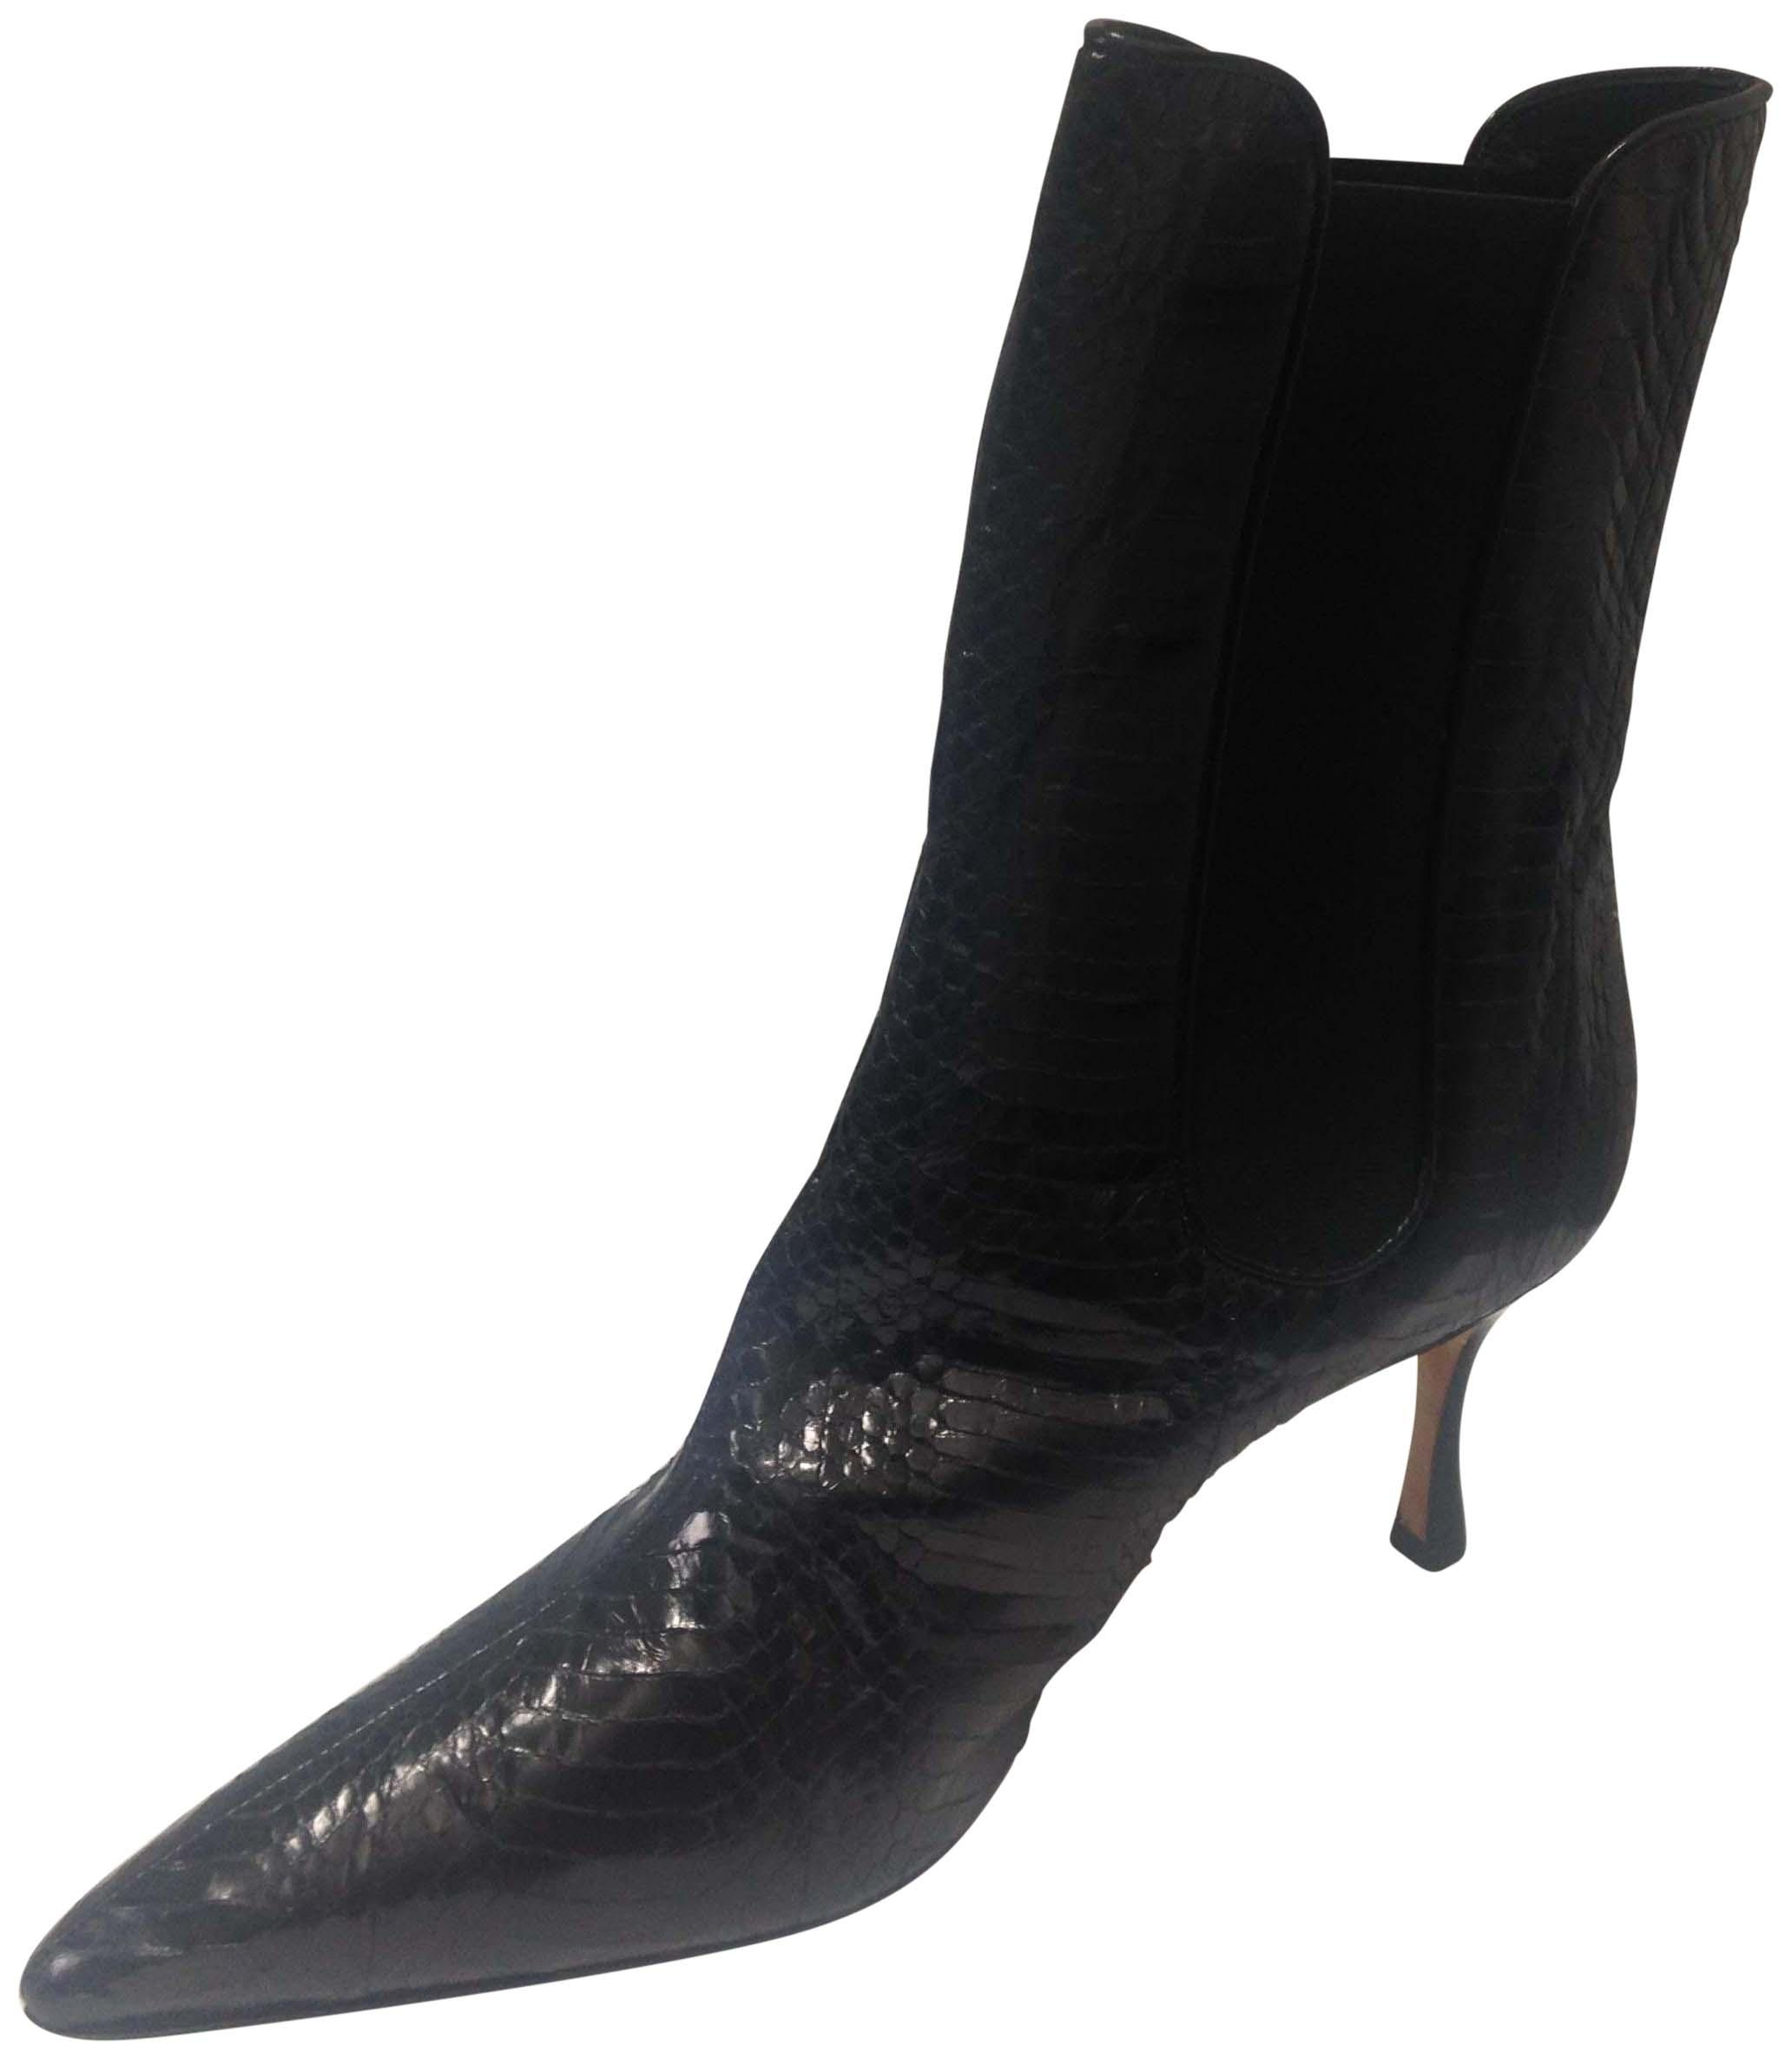 buy cheap order Manolo Blahnik Leather Pointed-Toe Boots outlet new arrival discount fashion Style Nrv0YK